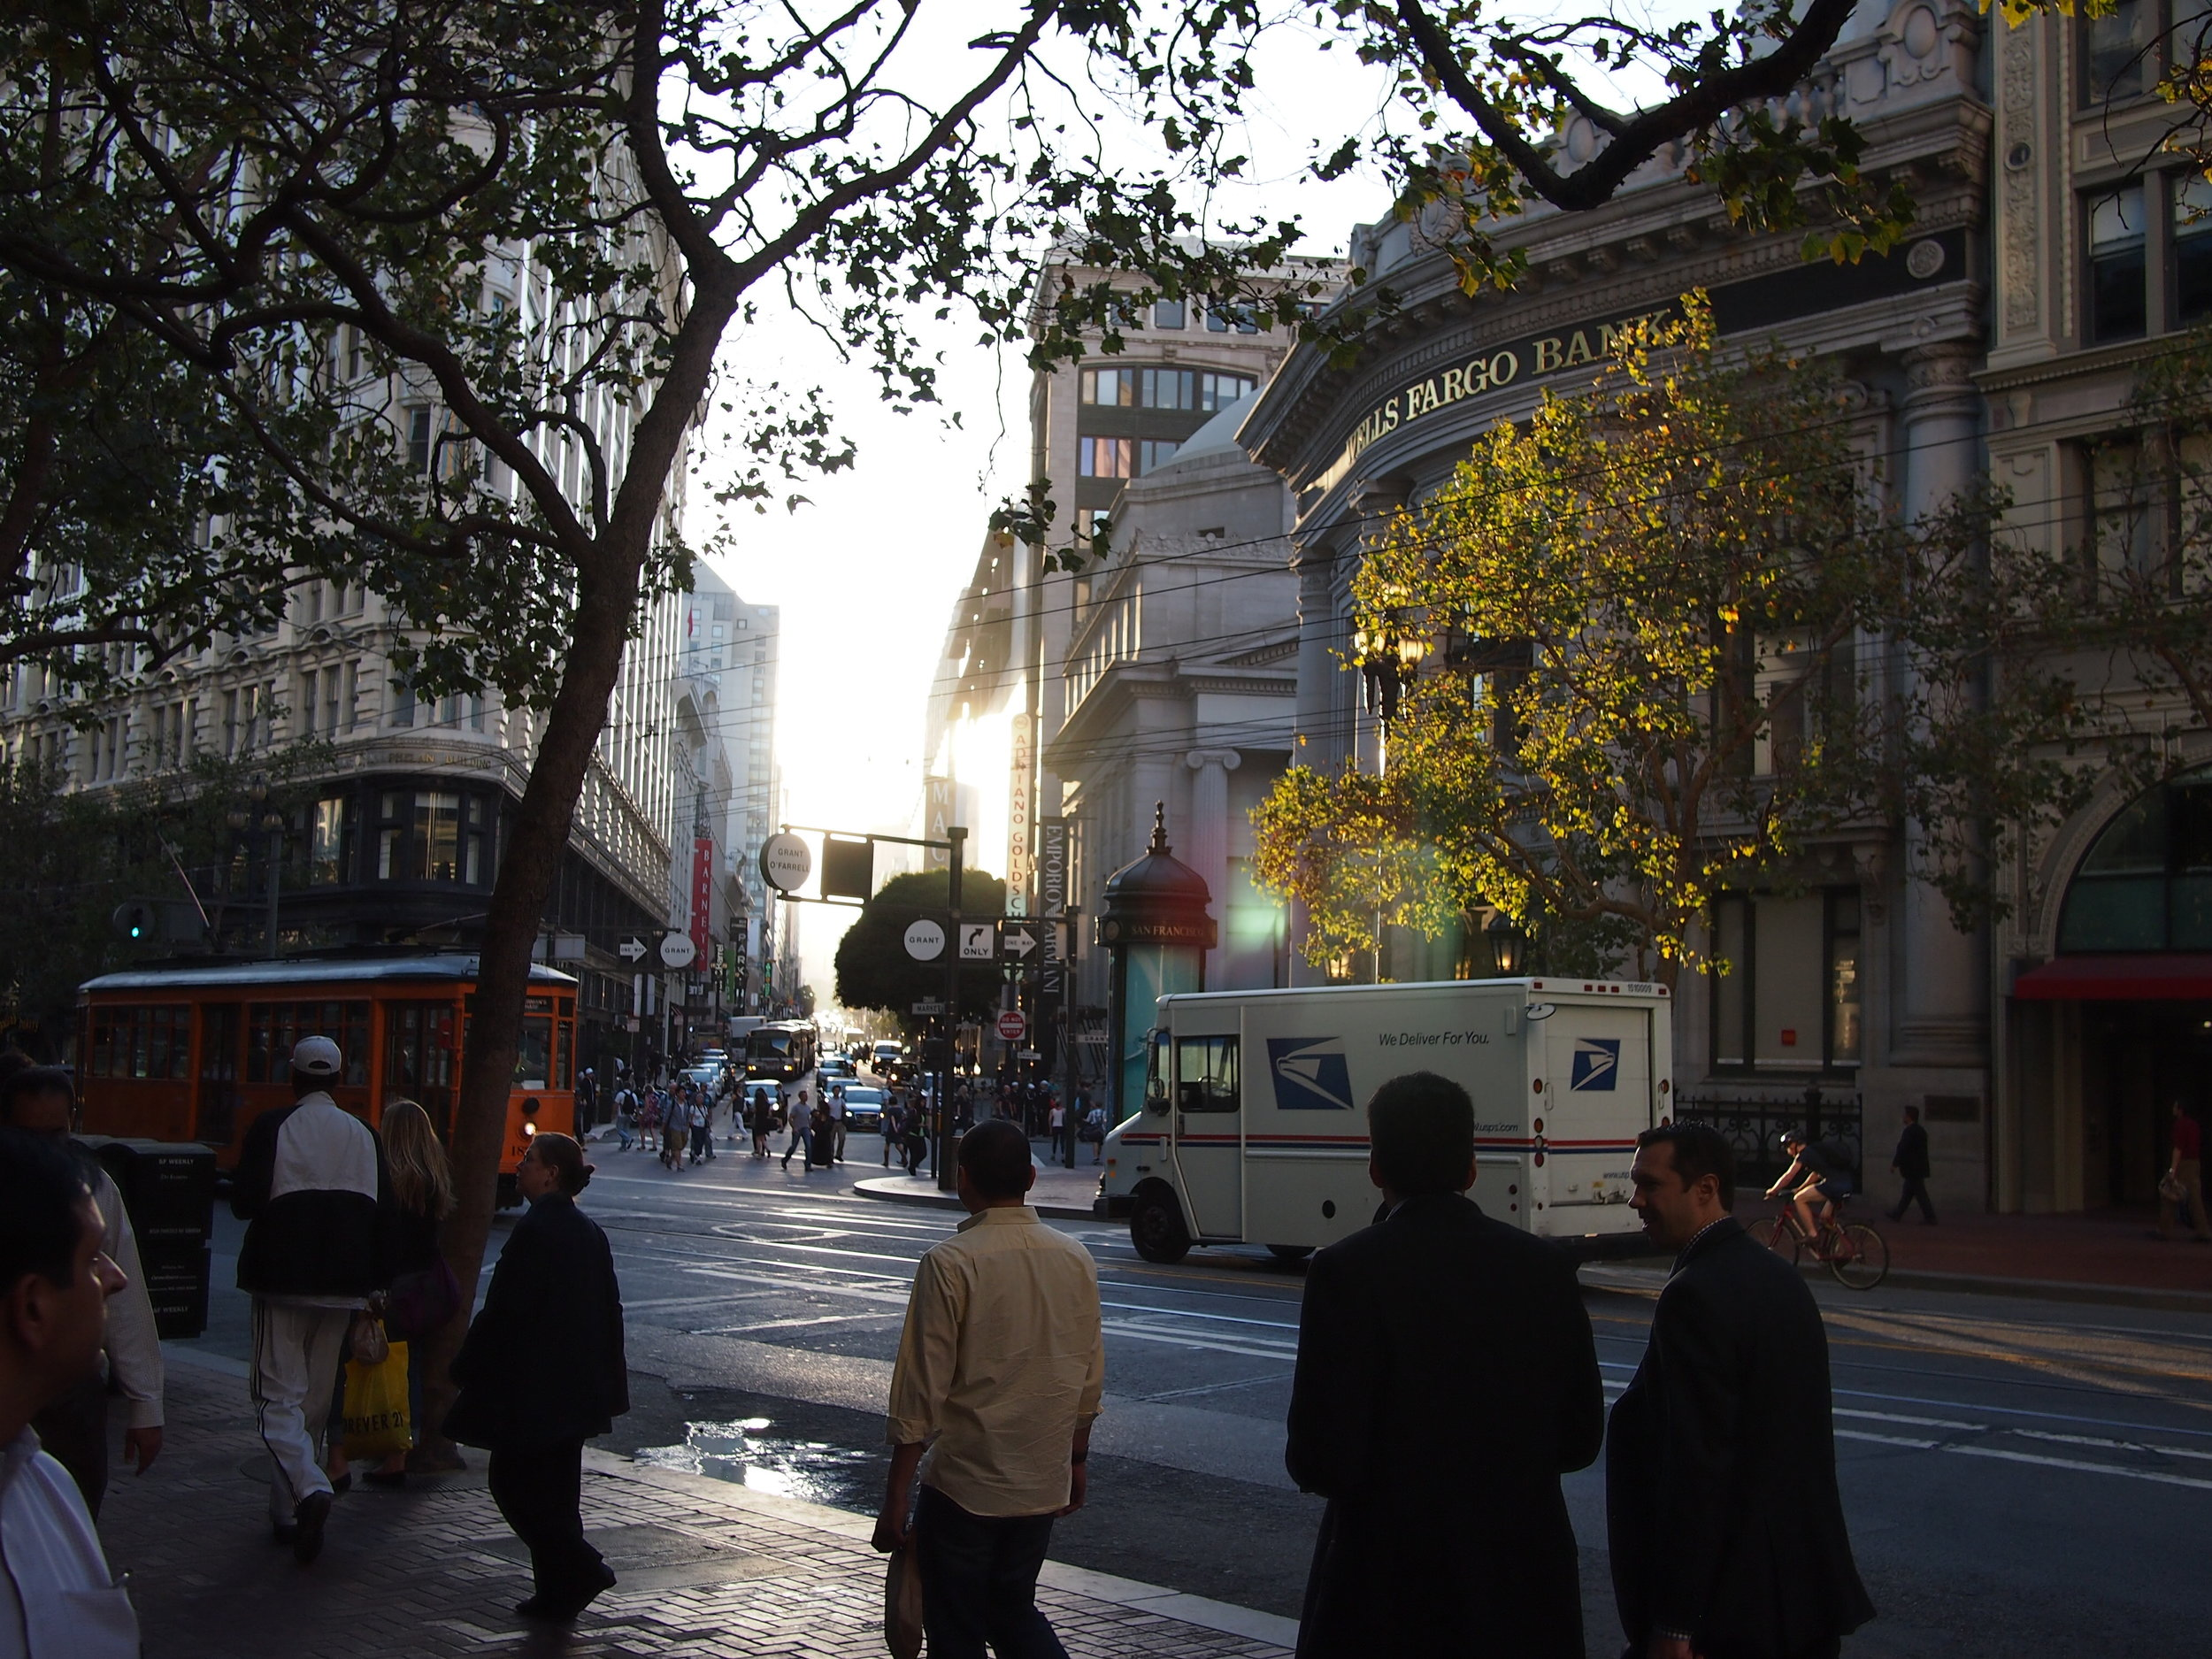 A London Plane tree glows in early morning light in downtown San Francisco.